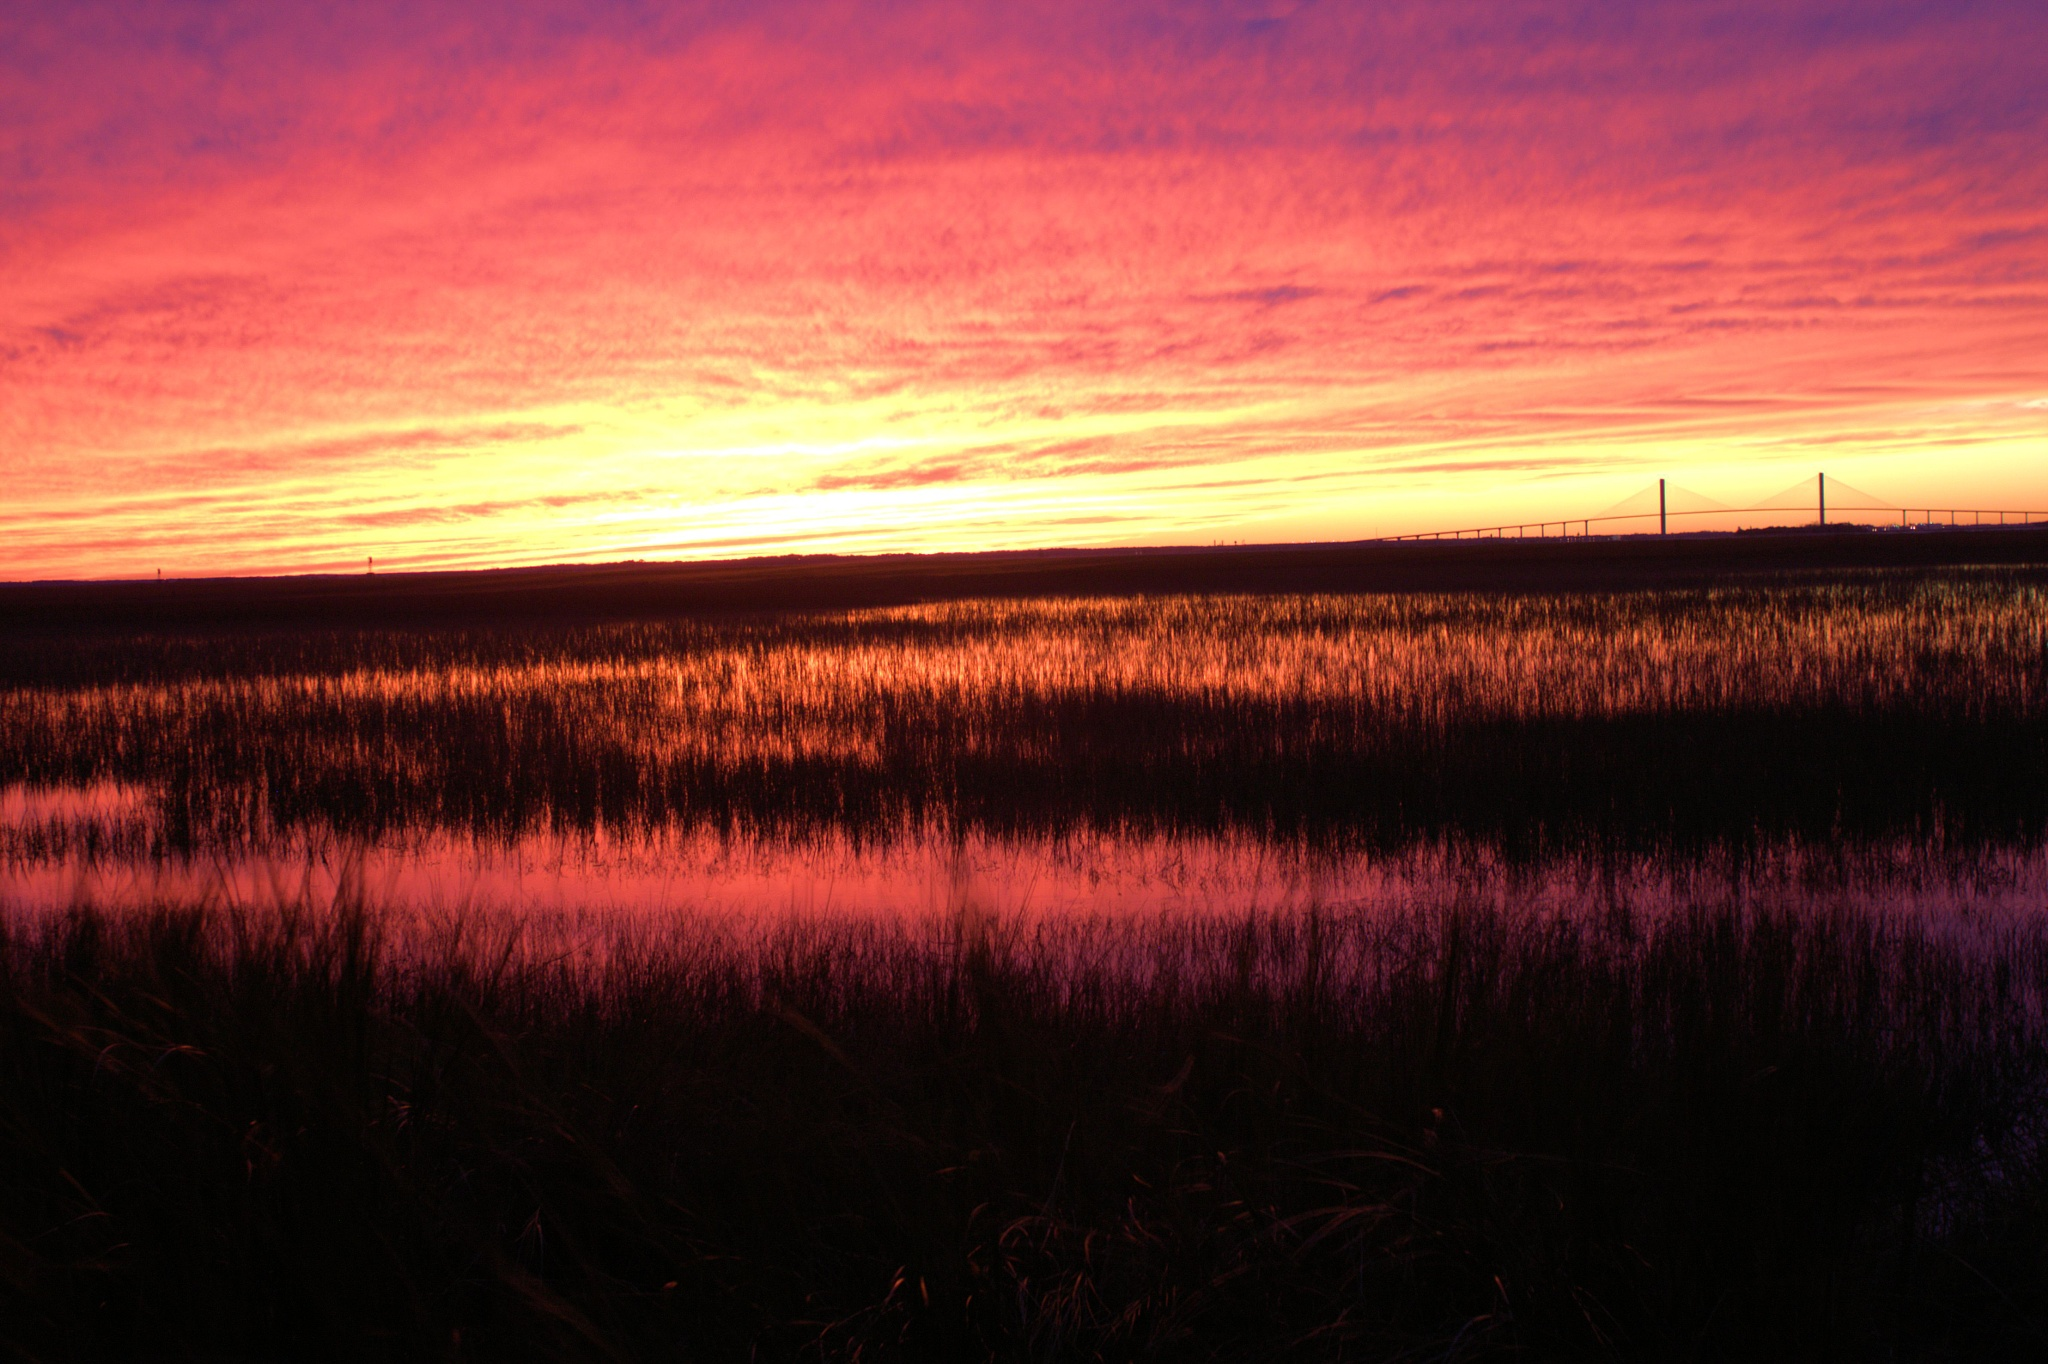 Sunset from the salt marshes of Jekyll Island by Michael McCasland